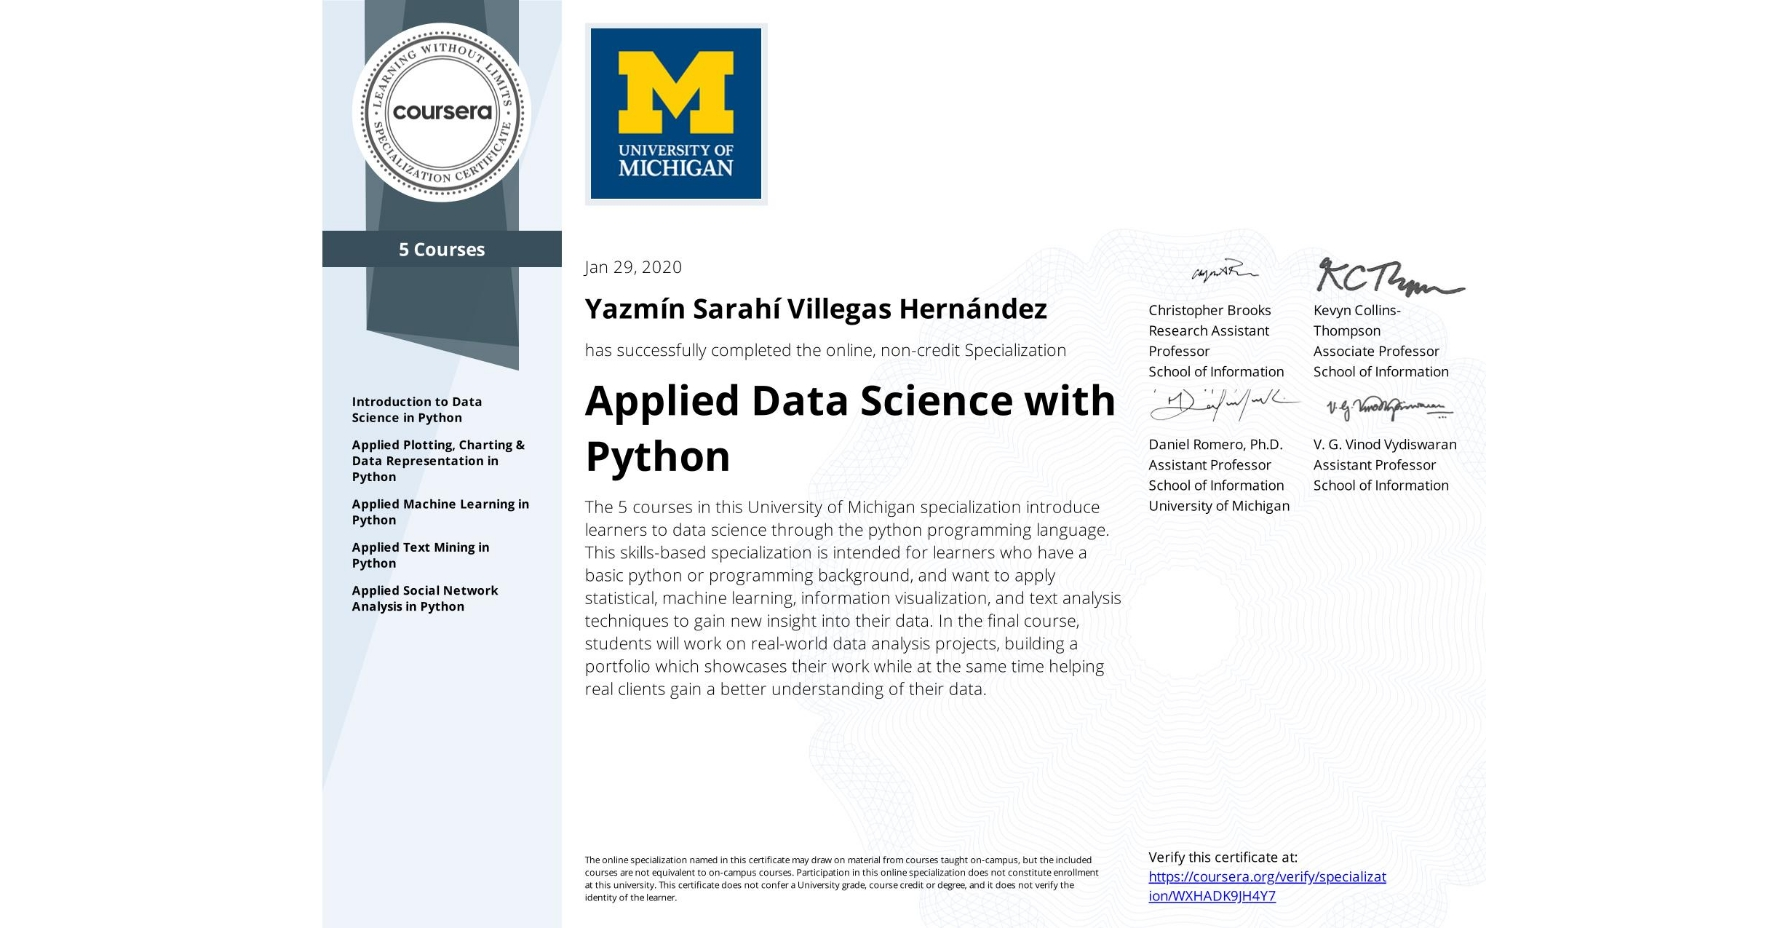 View certificate for Yazmín Sarahí Villegas Hernández, Applied Data Science with Python, offered through Coursera. The 5 courses in this University of Michigan specialization introduce learners to data science through the python programming language. This skills-based specialization is intended for learners who have a basic python or programming background, and want to apply statistical, machine learning, information visualization, and text analysis techniques to gain new insight into their data. In the final course, students will work on real-world data analysis projects, building a portfolio which showcases their work while at the same time helping real clients gain a better understanding of their data.